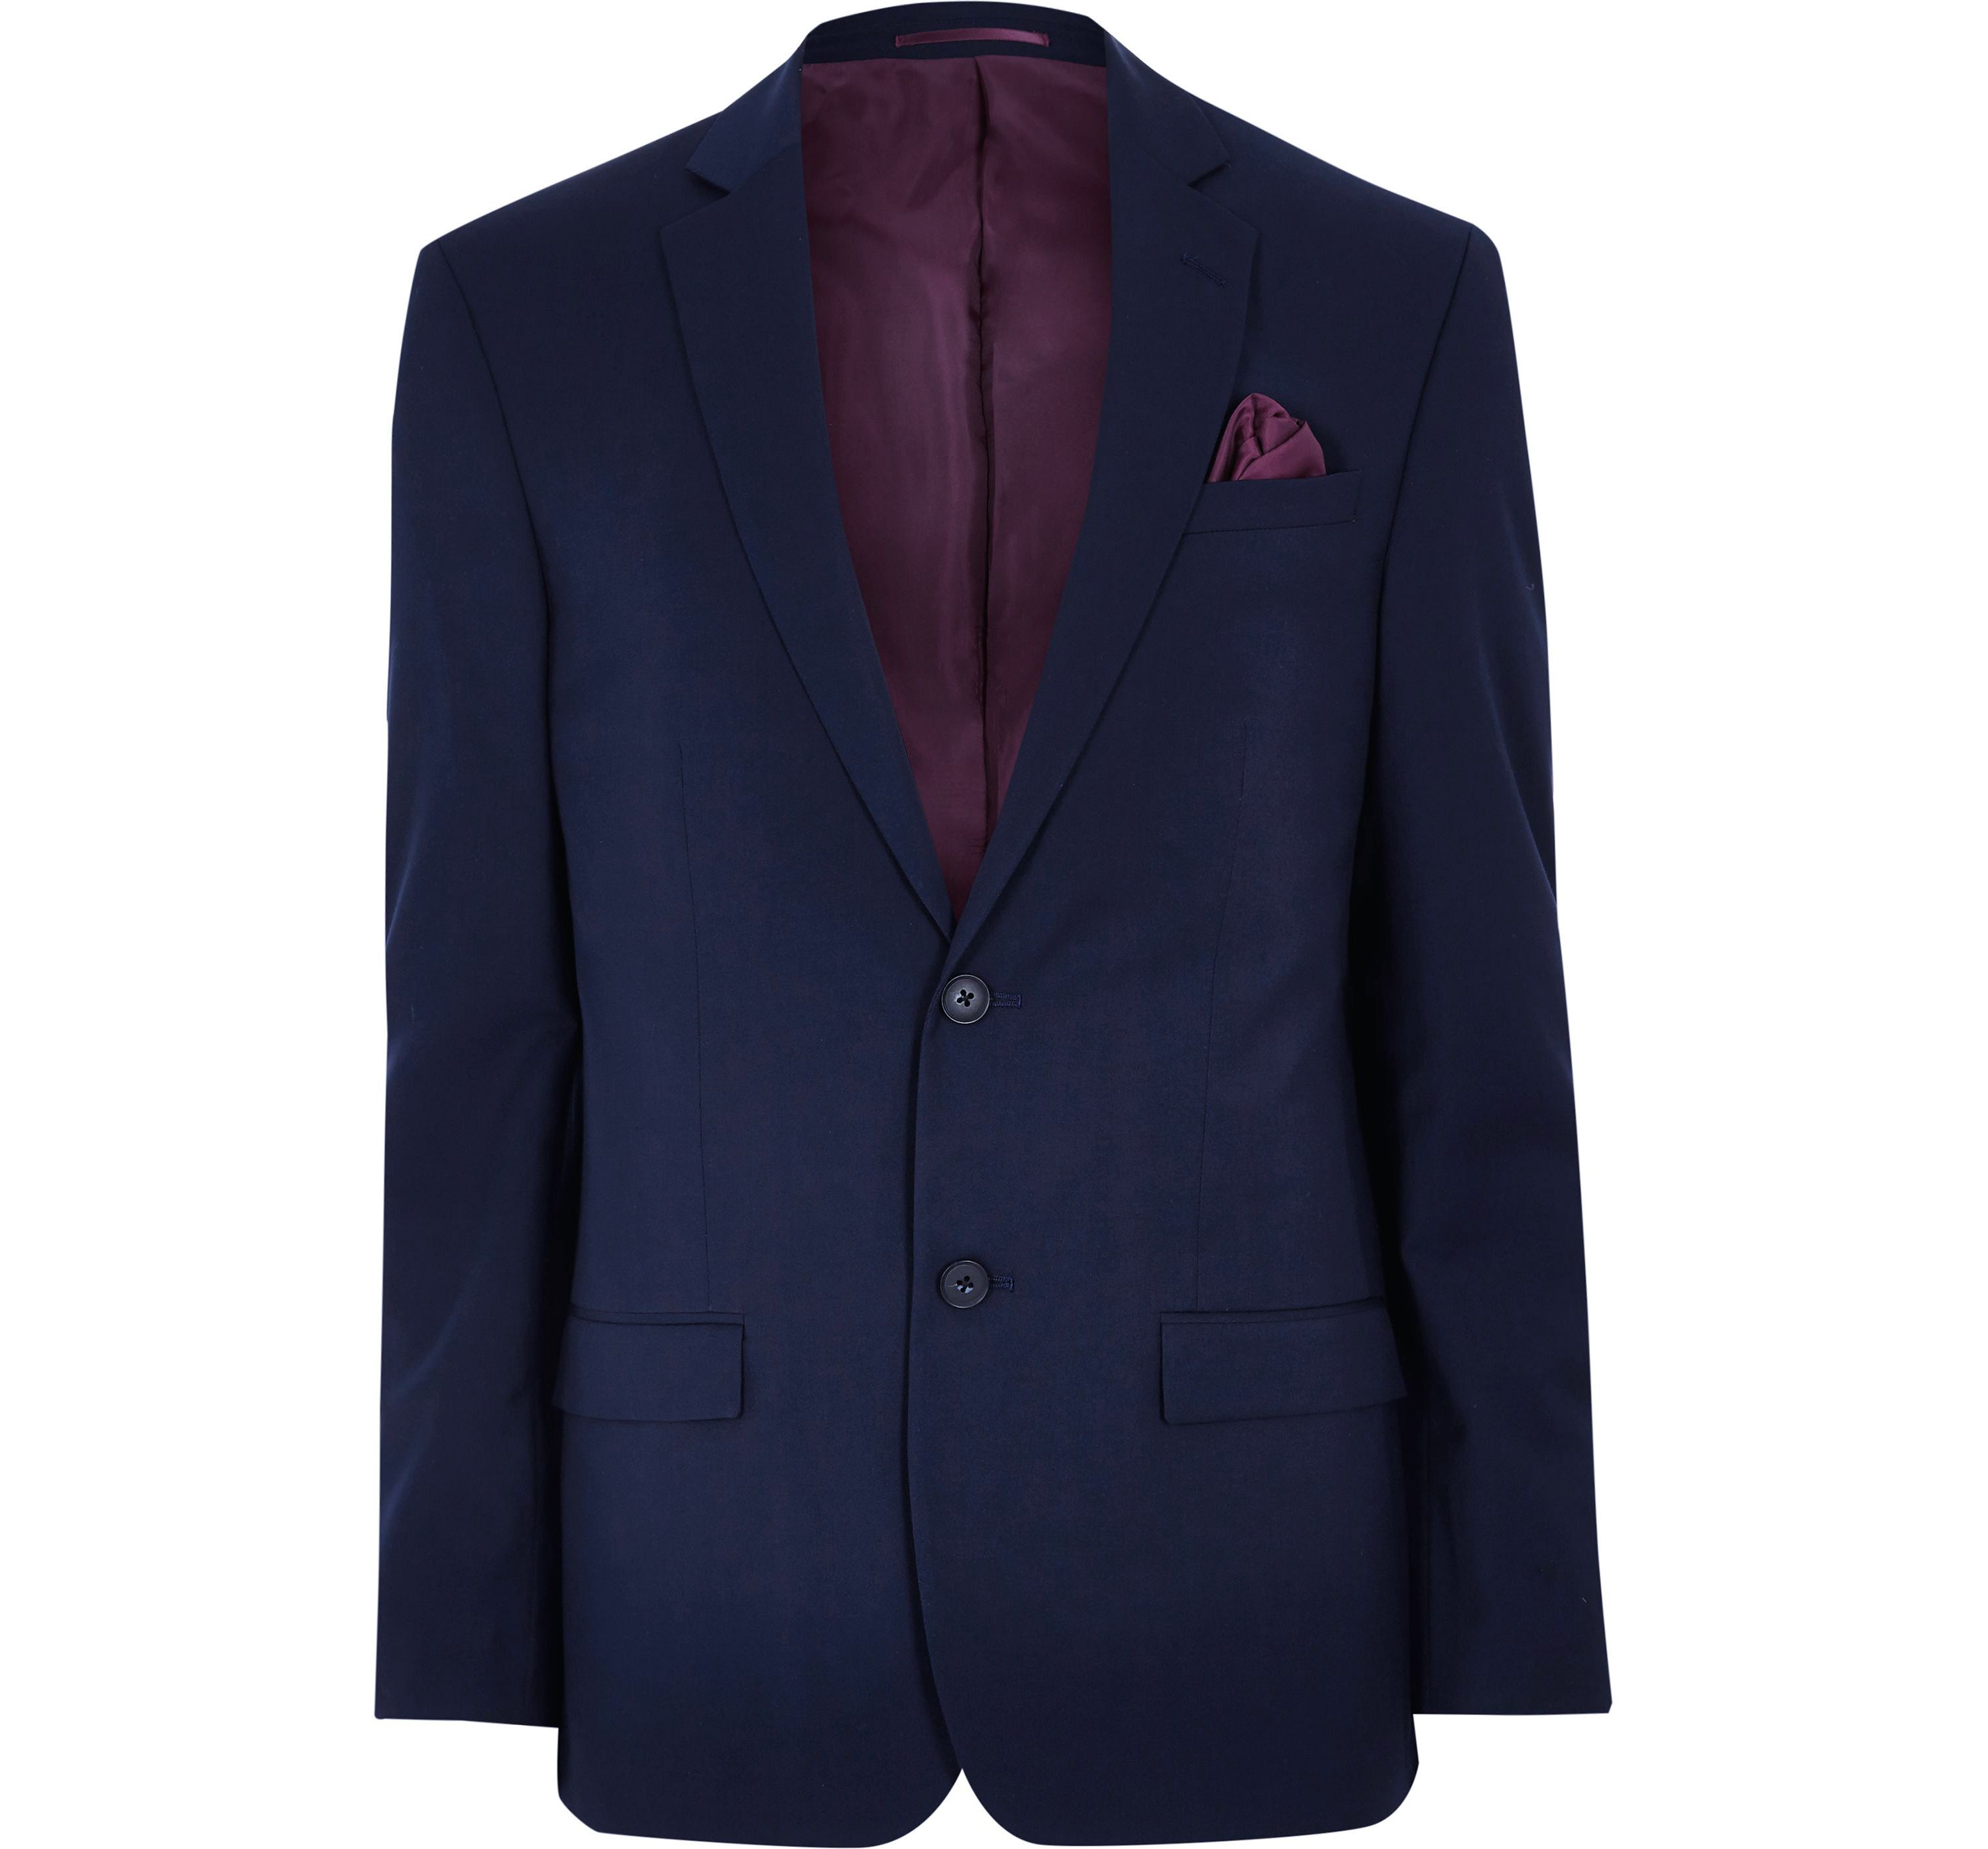 River Island Mens Navy tailored suit jacket